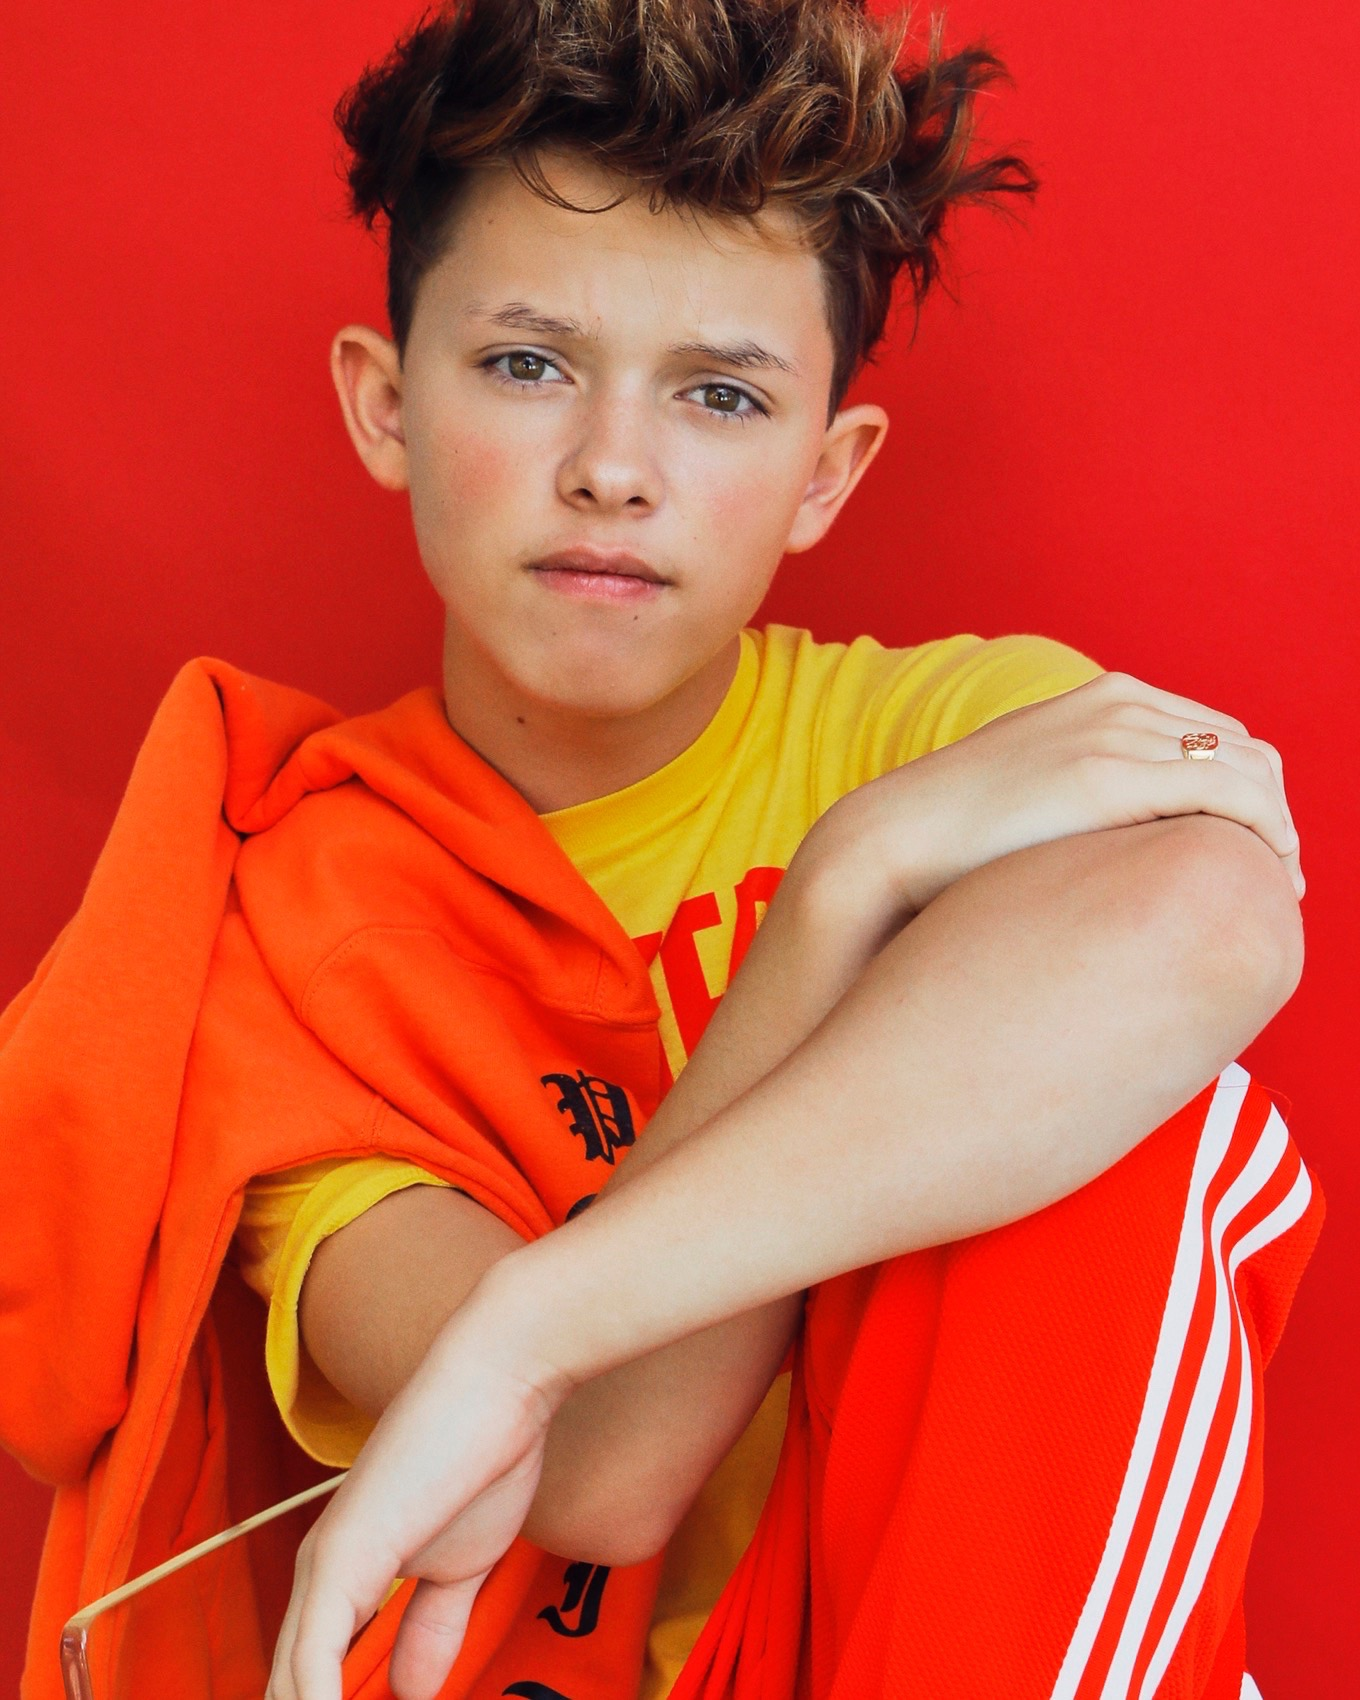 Jacob Sartorius Gives RAW Interview, Talks Selling Out.